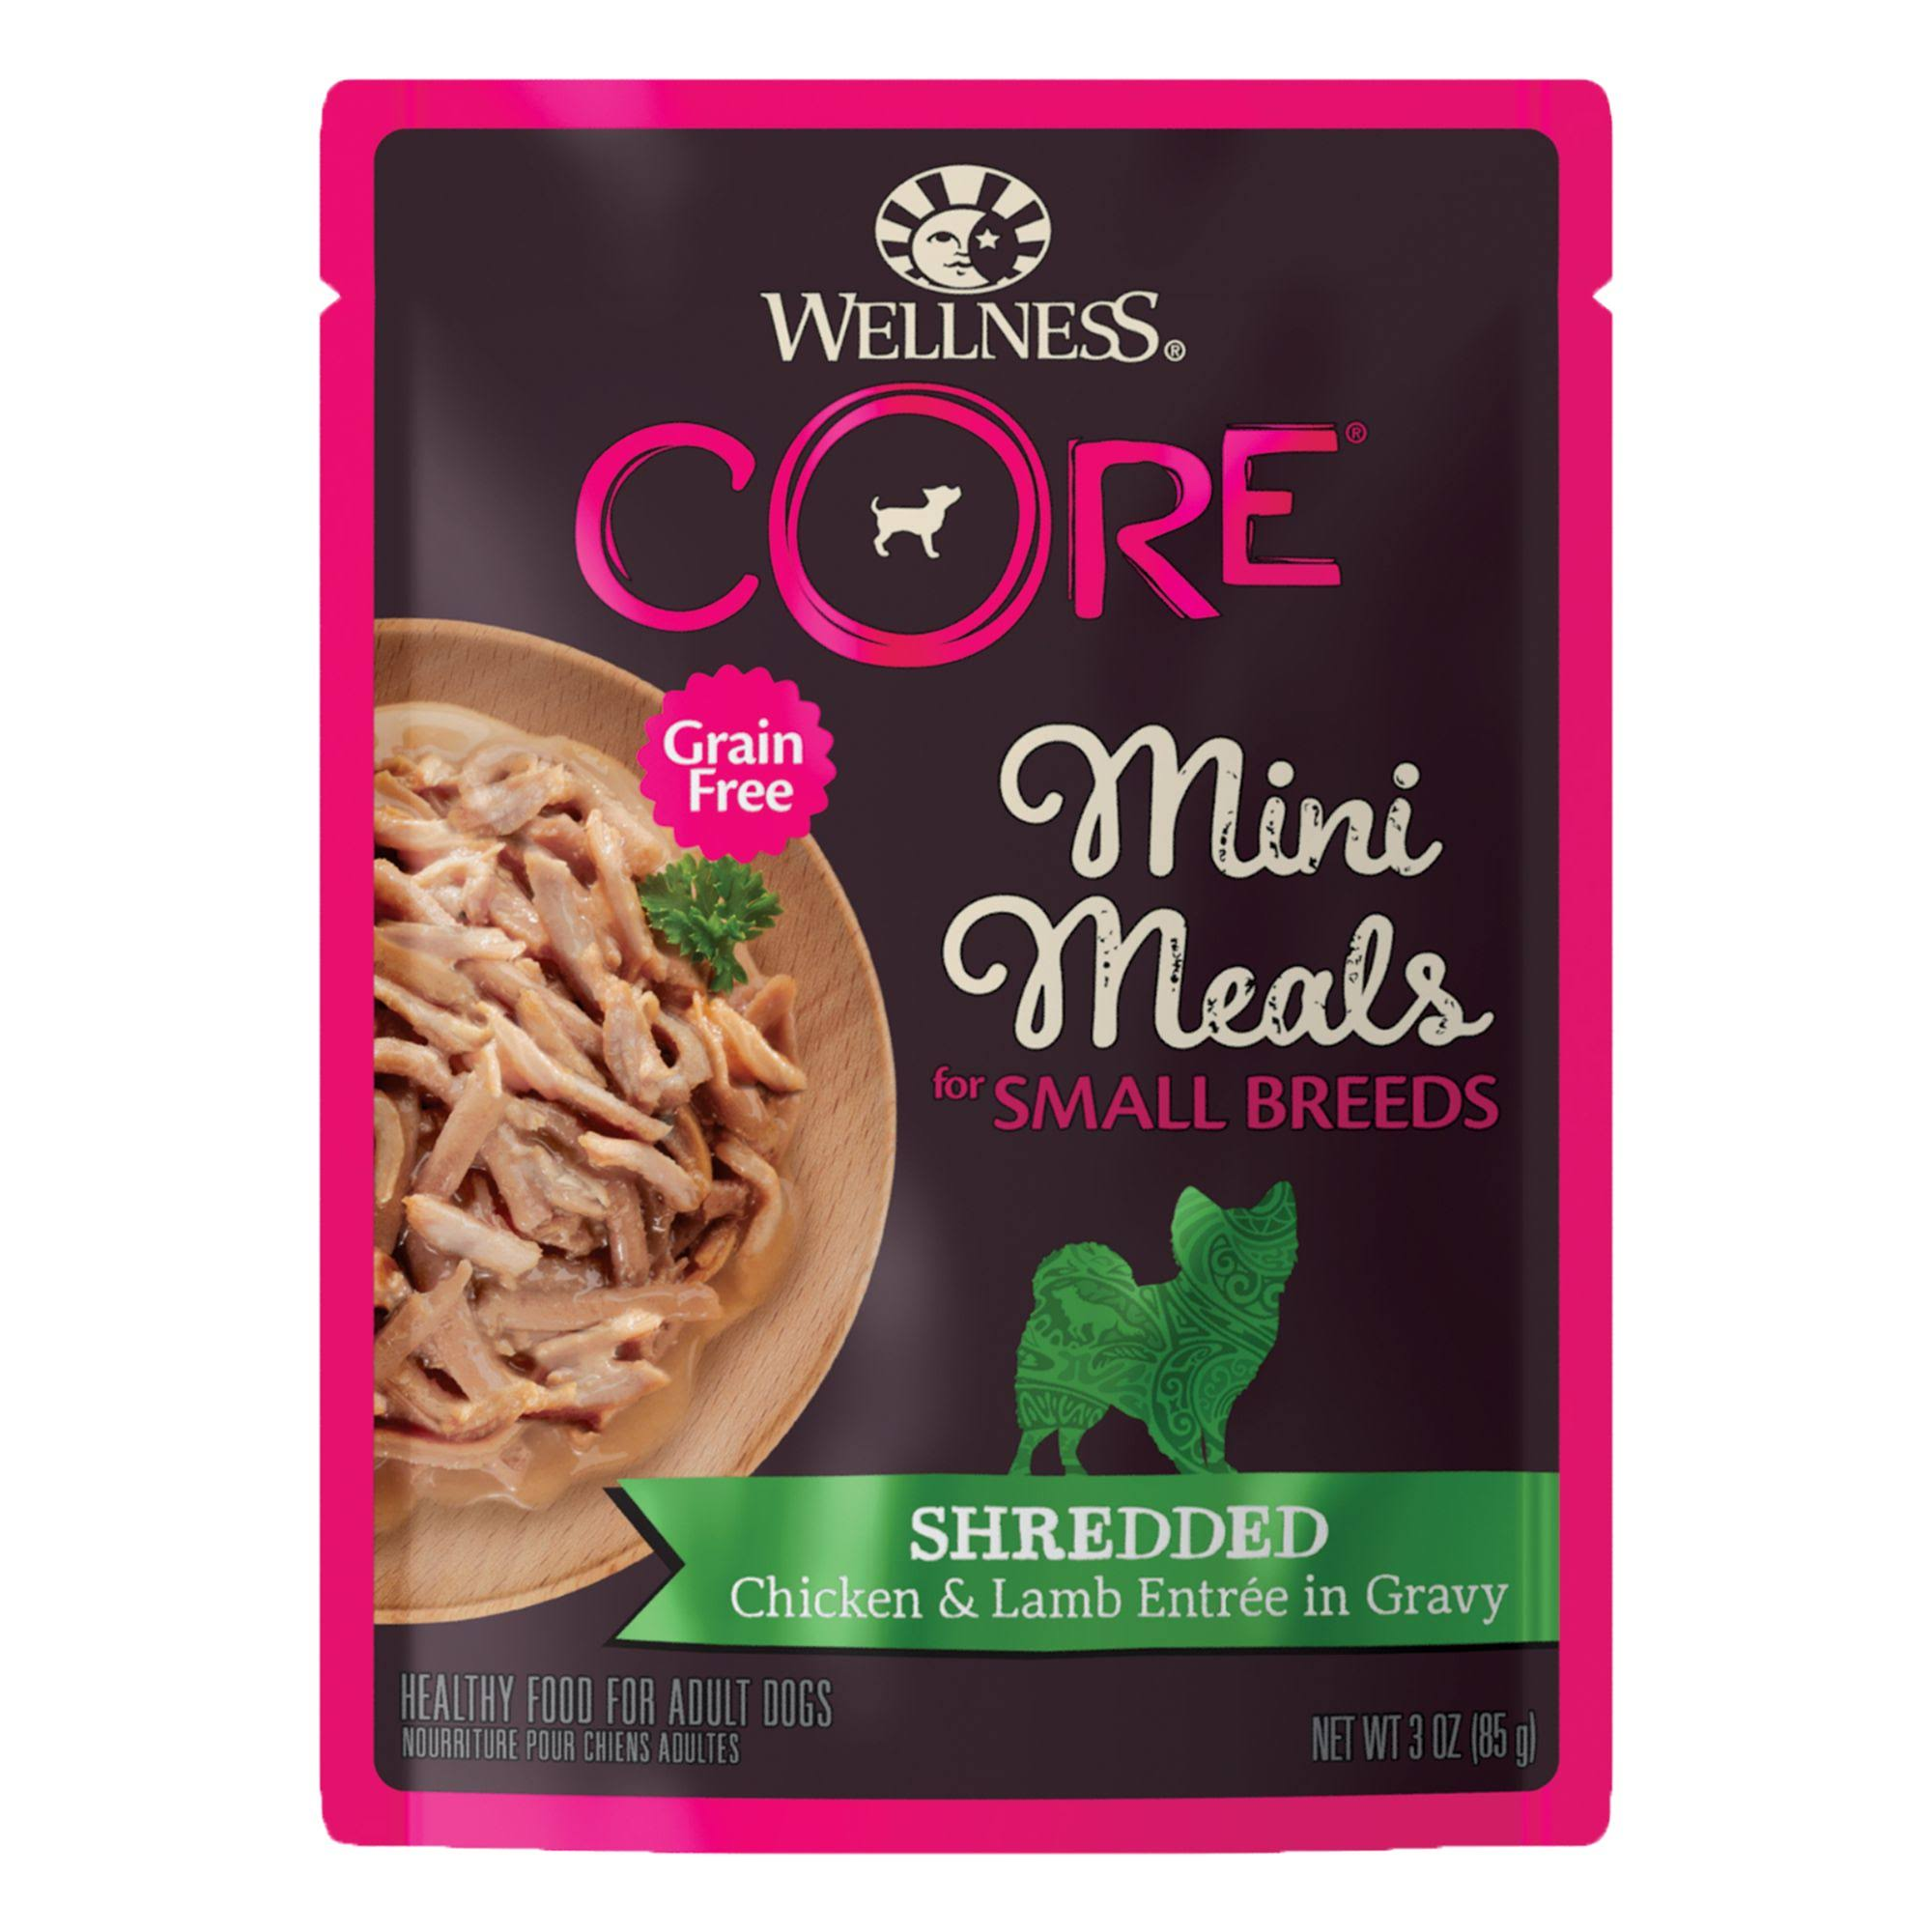 Wellness Core Grain Free Mini Meals Shredded Chicken & Lamb Entree in Gravy Small Breed Dog Food 3 oz